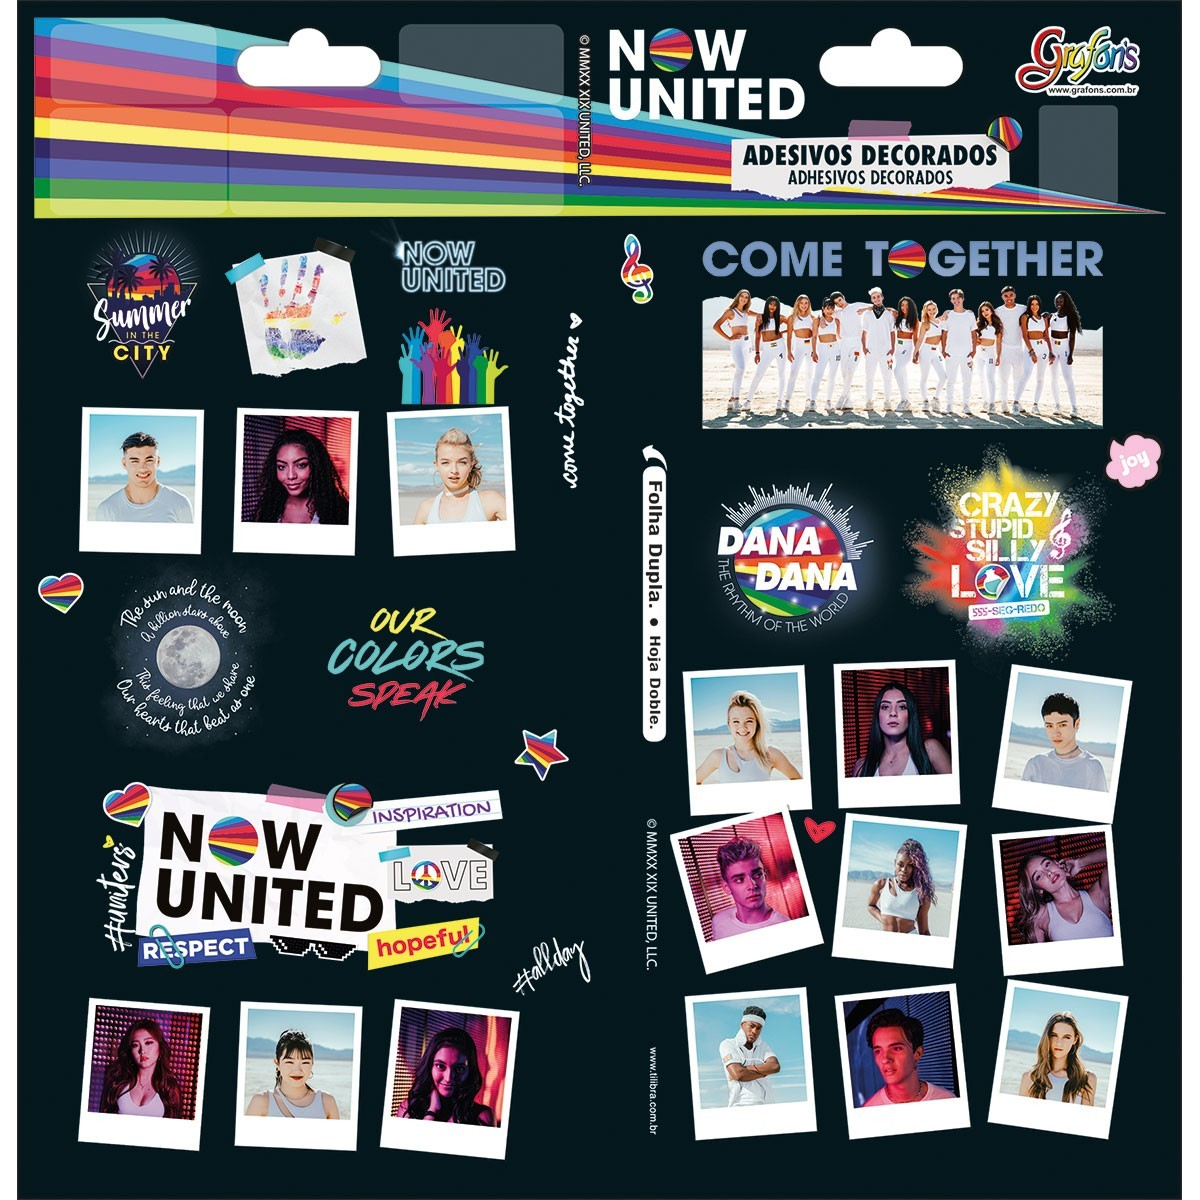 ADESIVO DECORADO DUPLO NOW UNITED